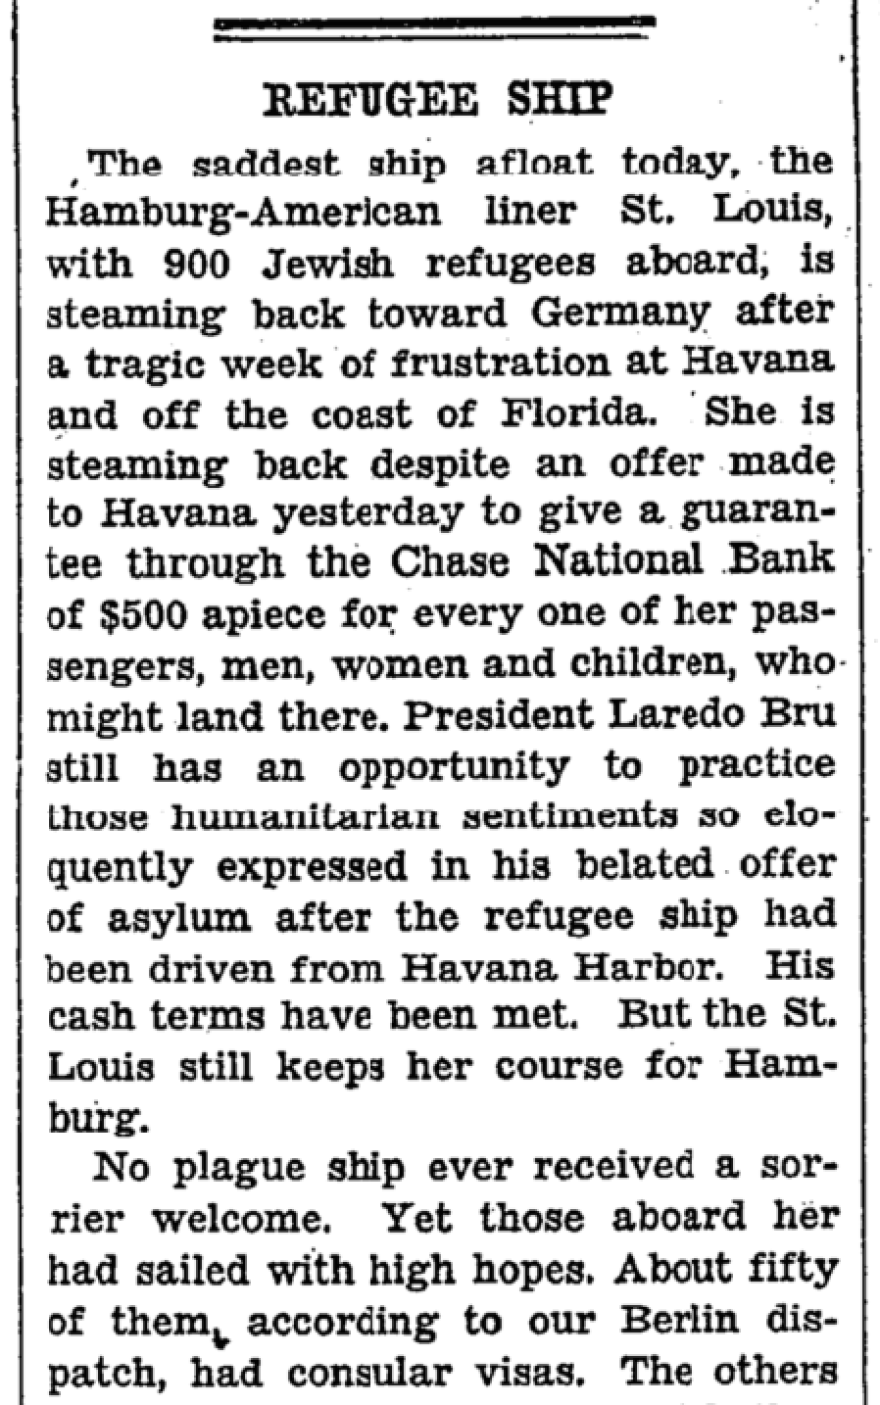 An archival story from the New York Times, dated June 8, 1939.